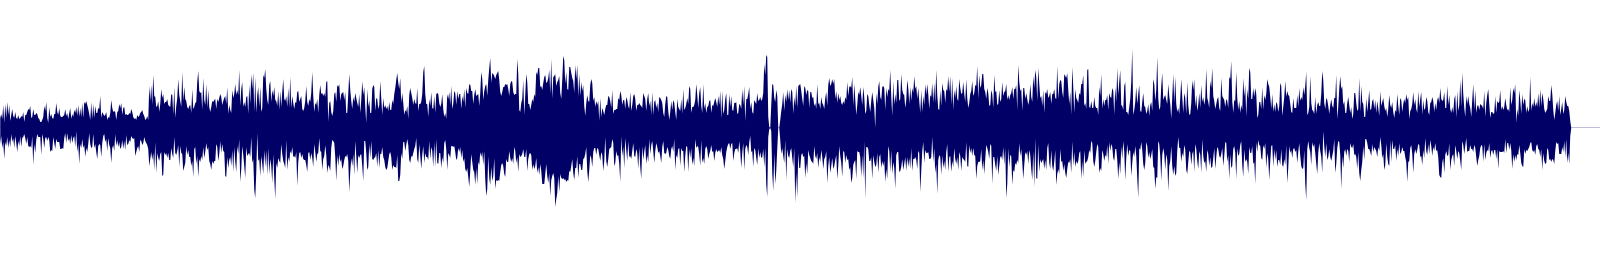 waveform of track #128720